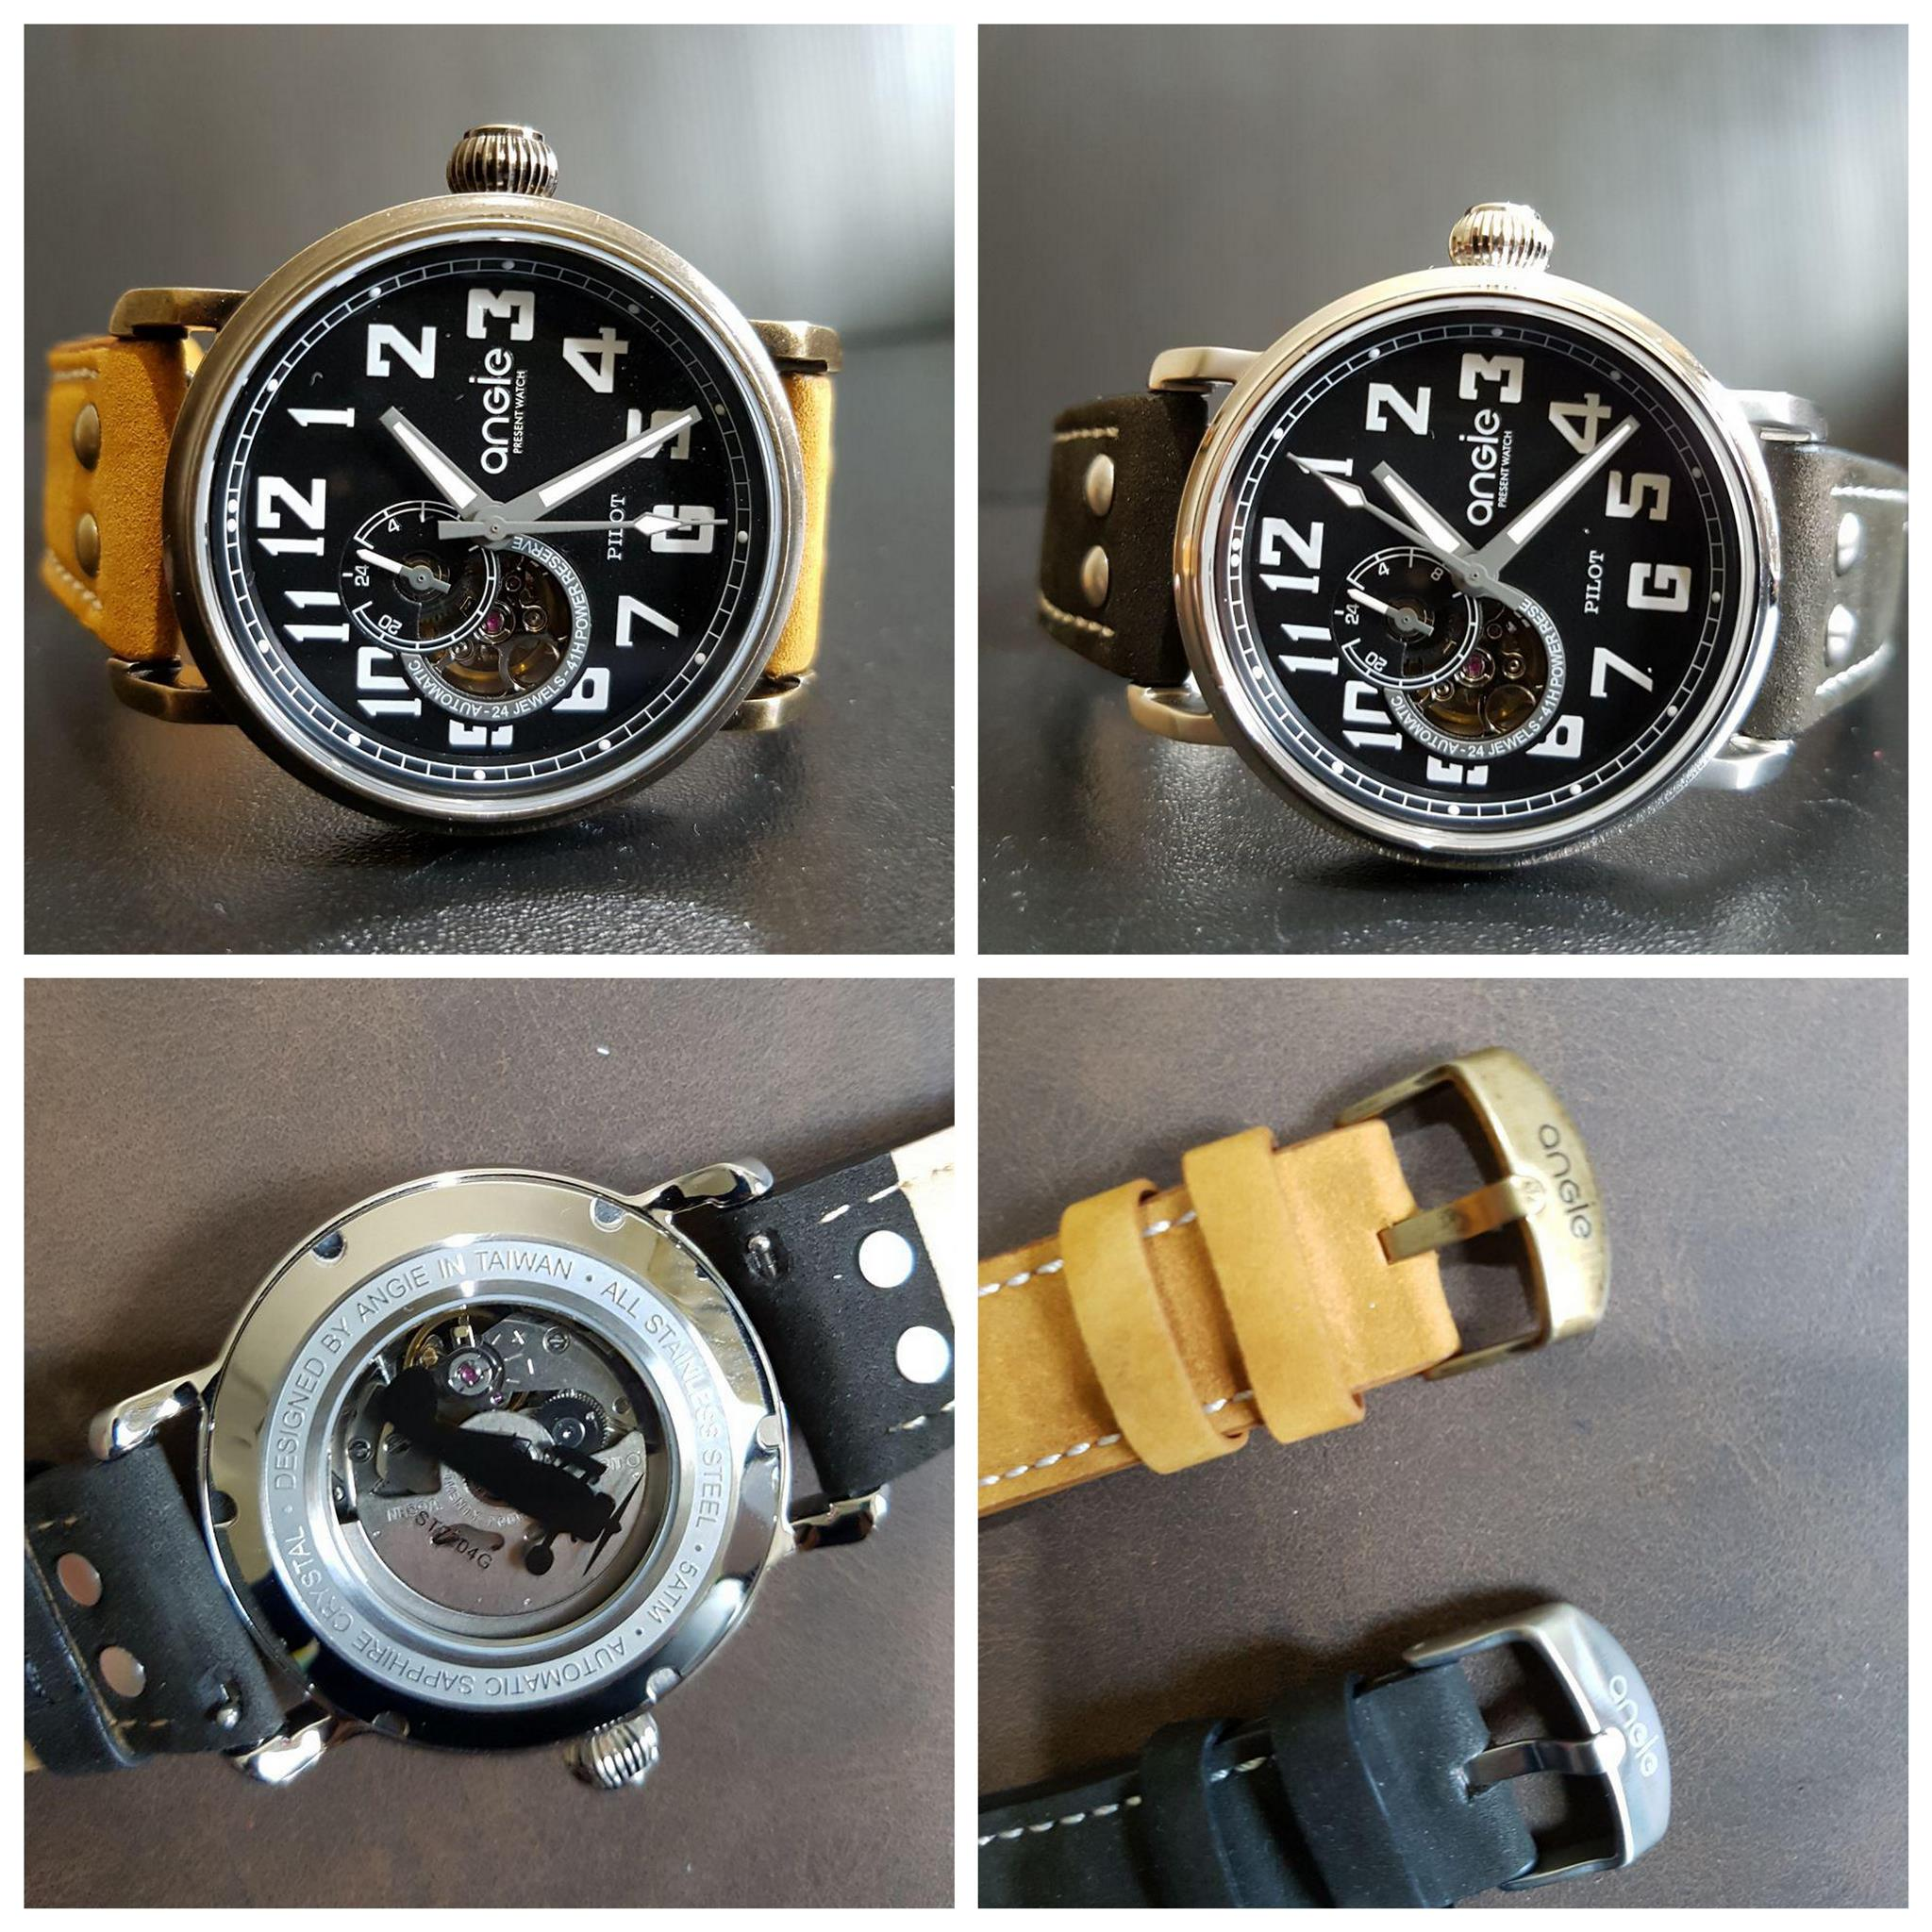 New Arrivals! Angie Pilot Automatic Bronze Watch 43mm Size Seiko NH 39